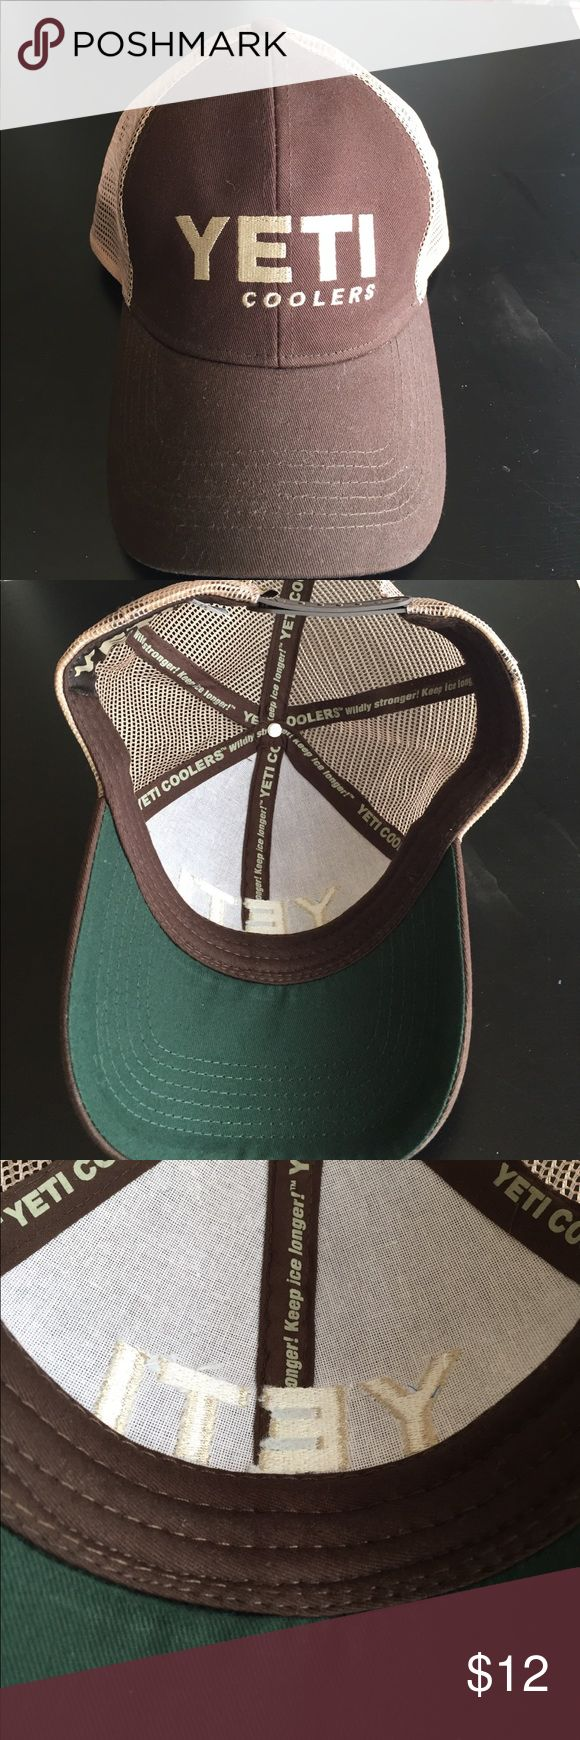 Yeti trucker hat Never worn, like new condition! Dark brown/khaki...unique color for yeti hat! yeti Accessories Hats